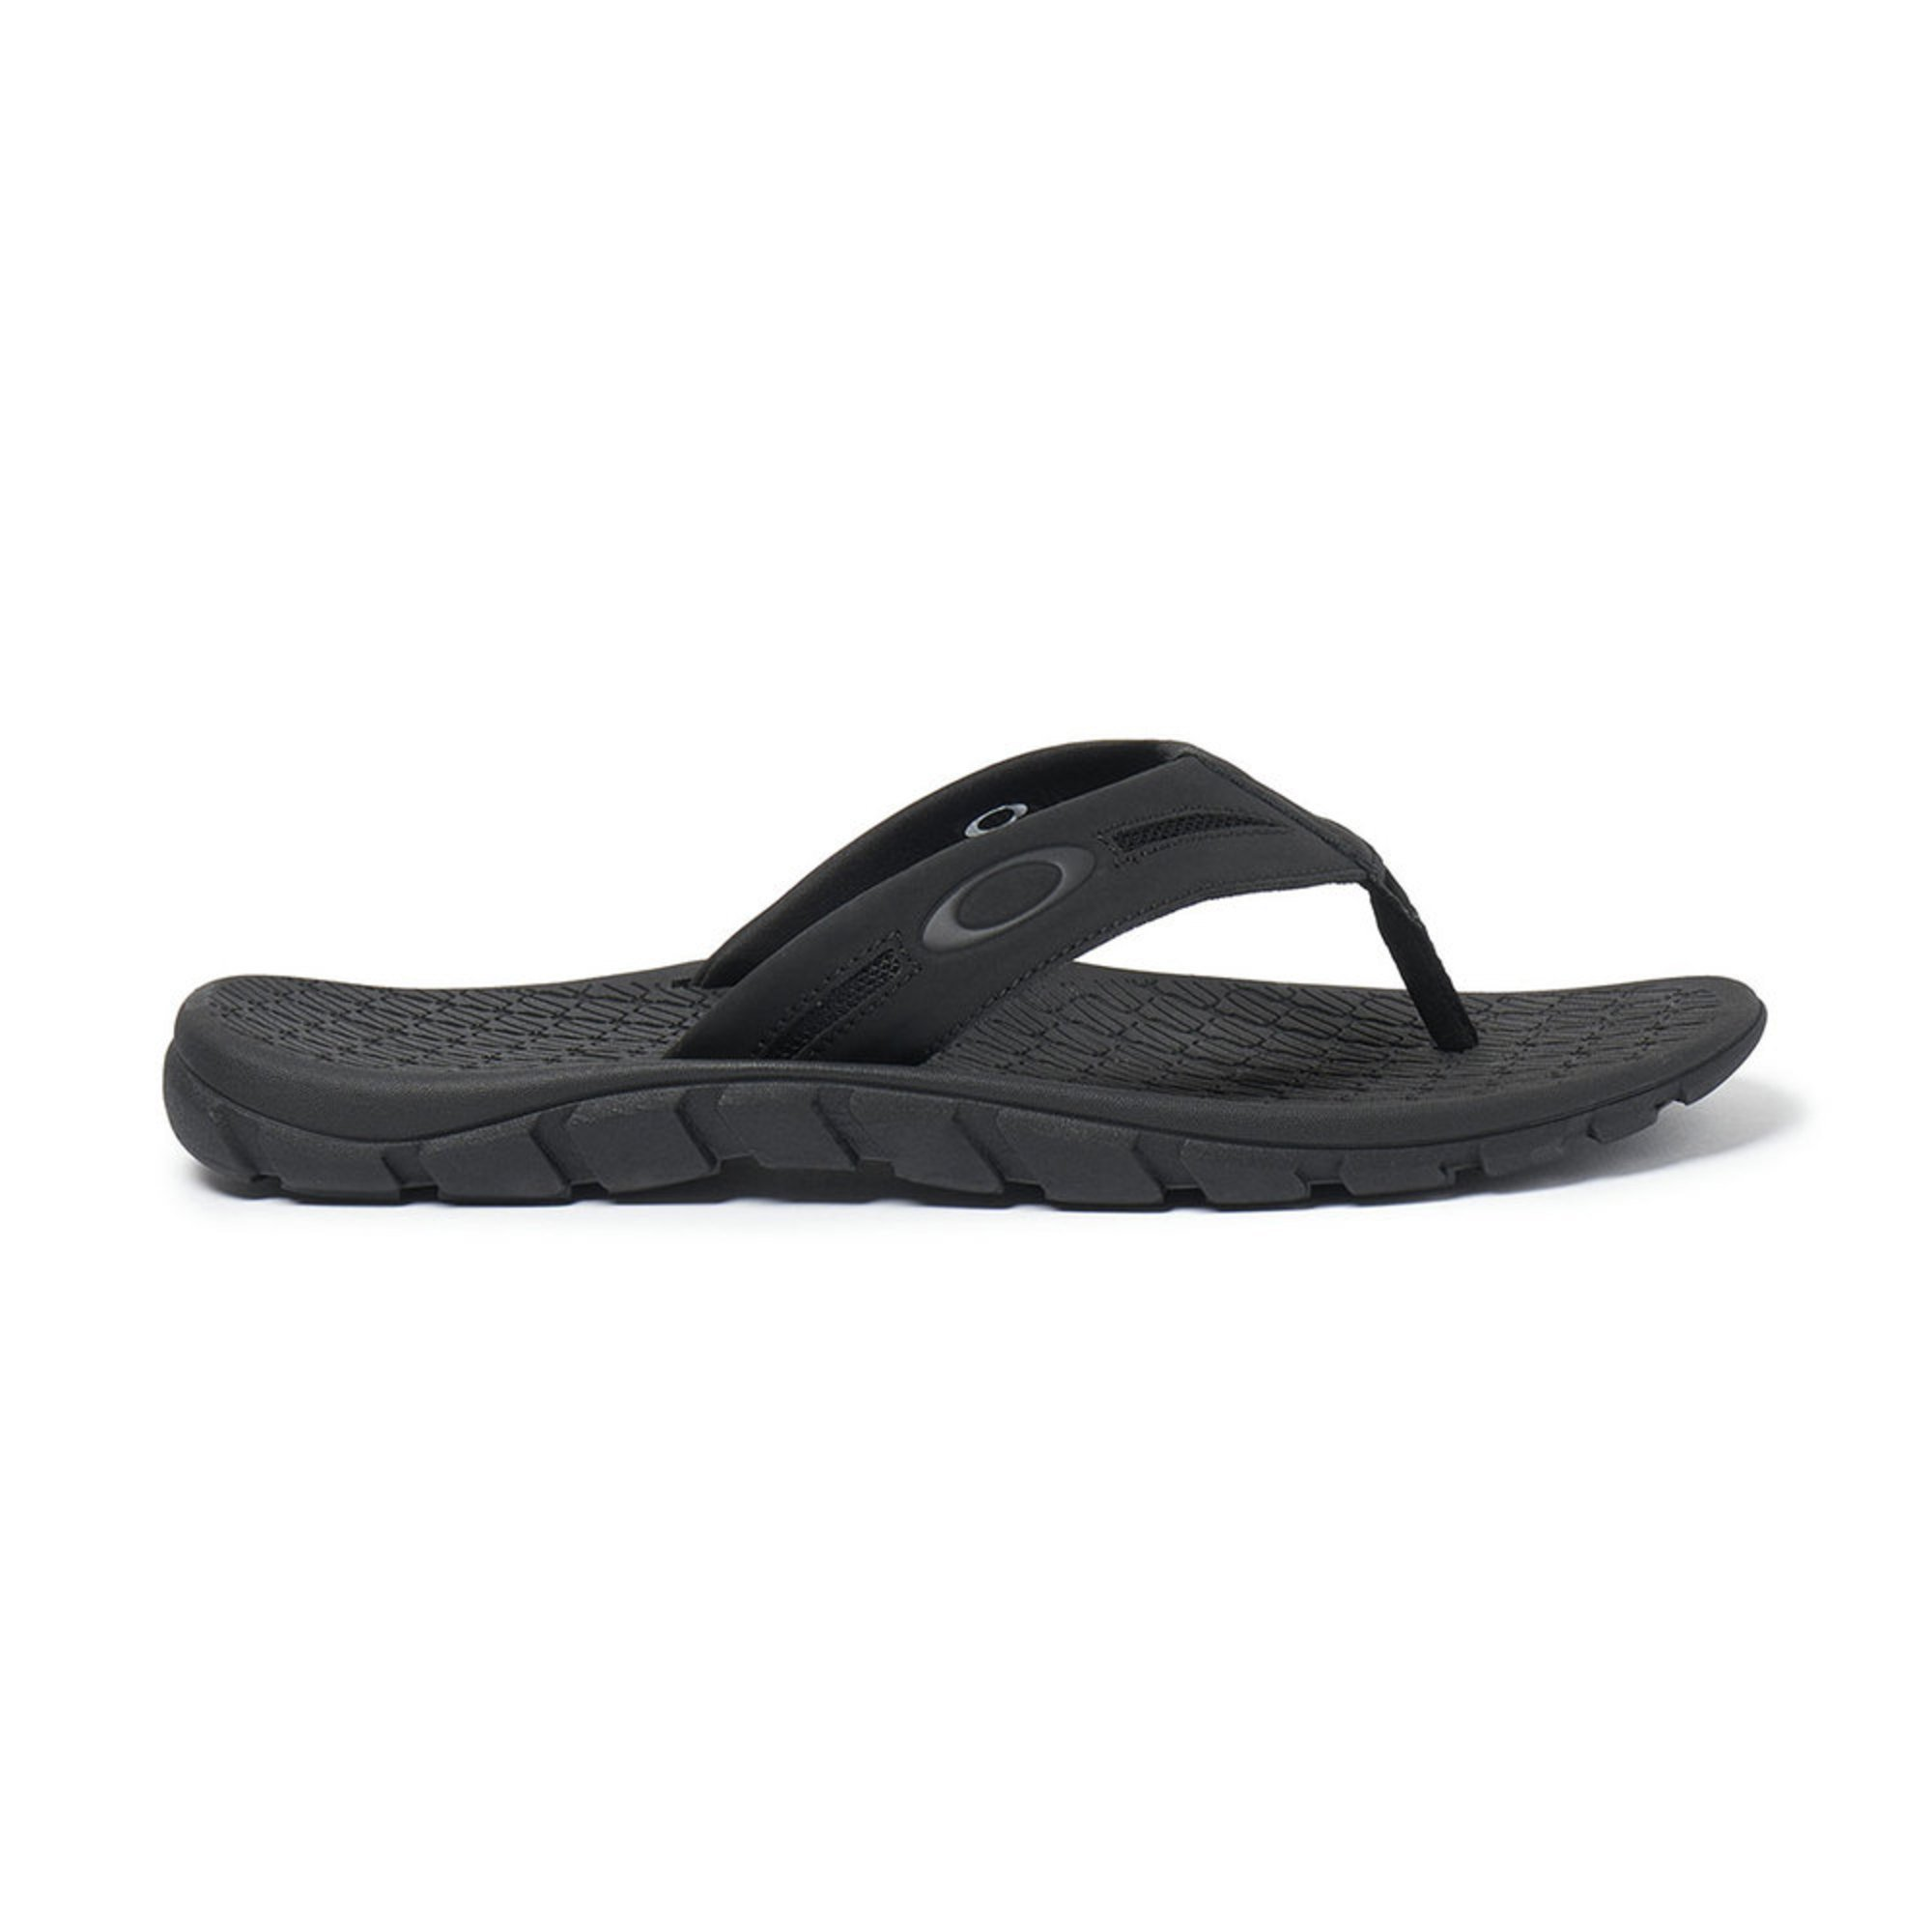 e6d309f0e06 Oakley. Oakley Men s Operative Outdoor Sandal